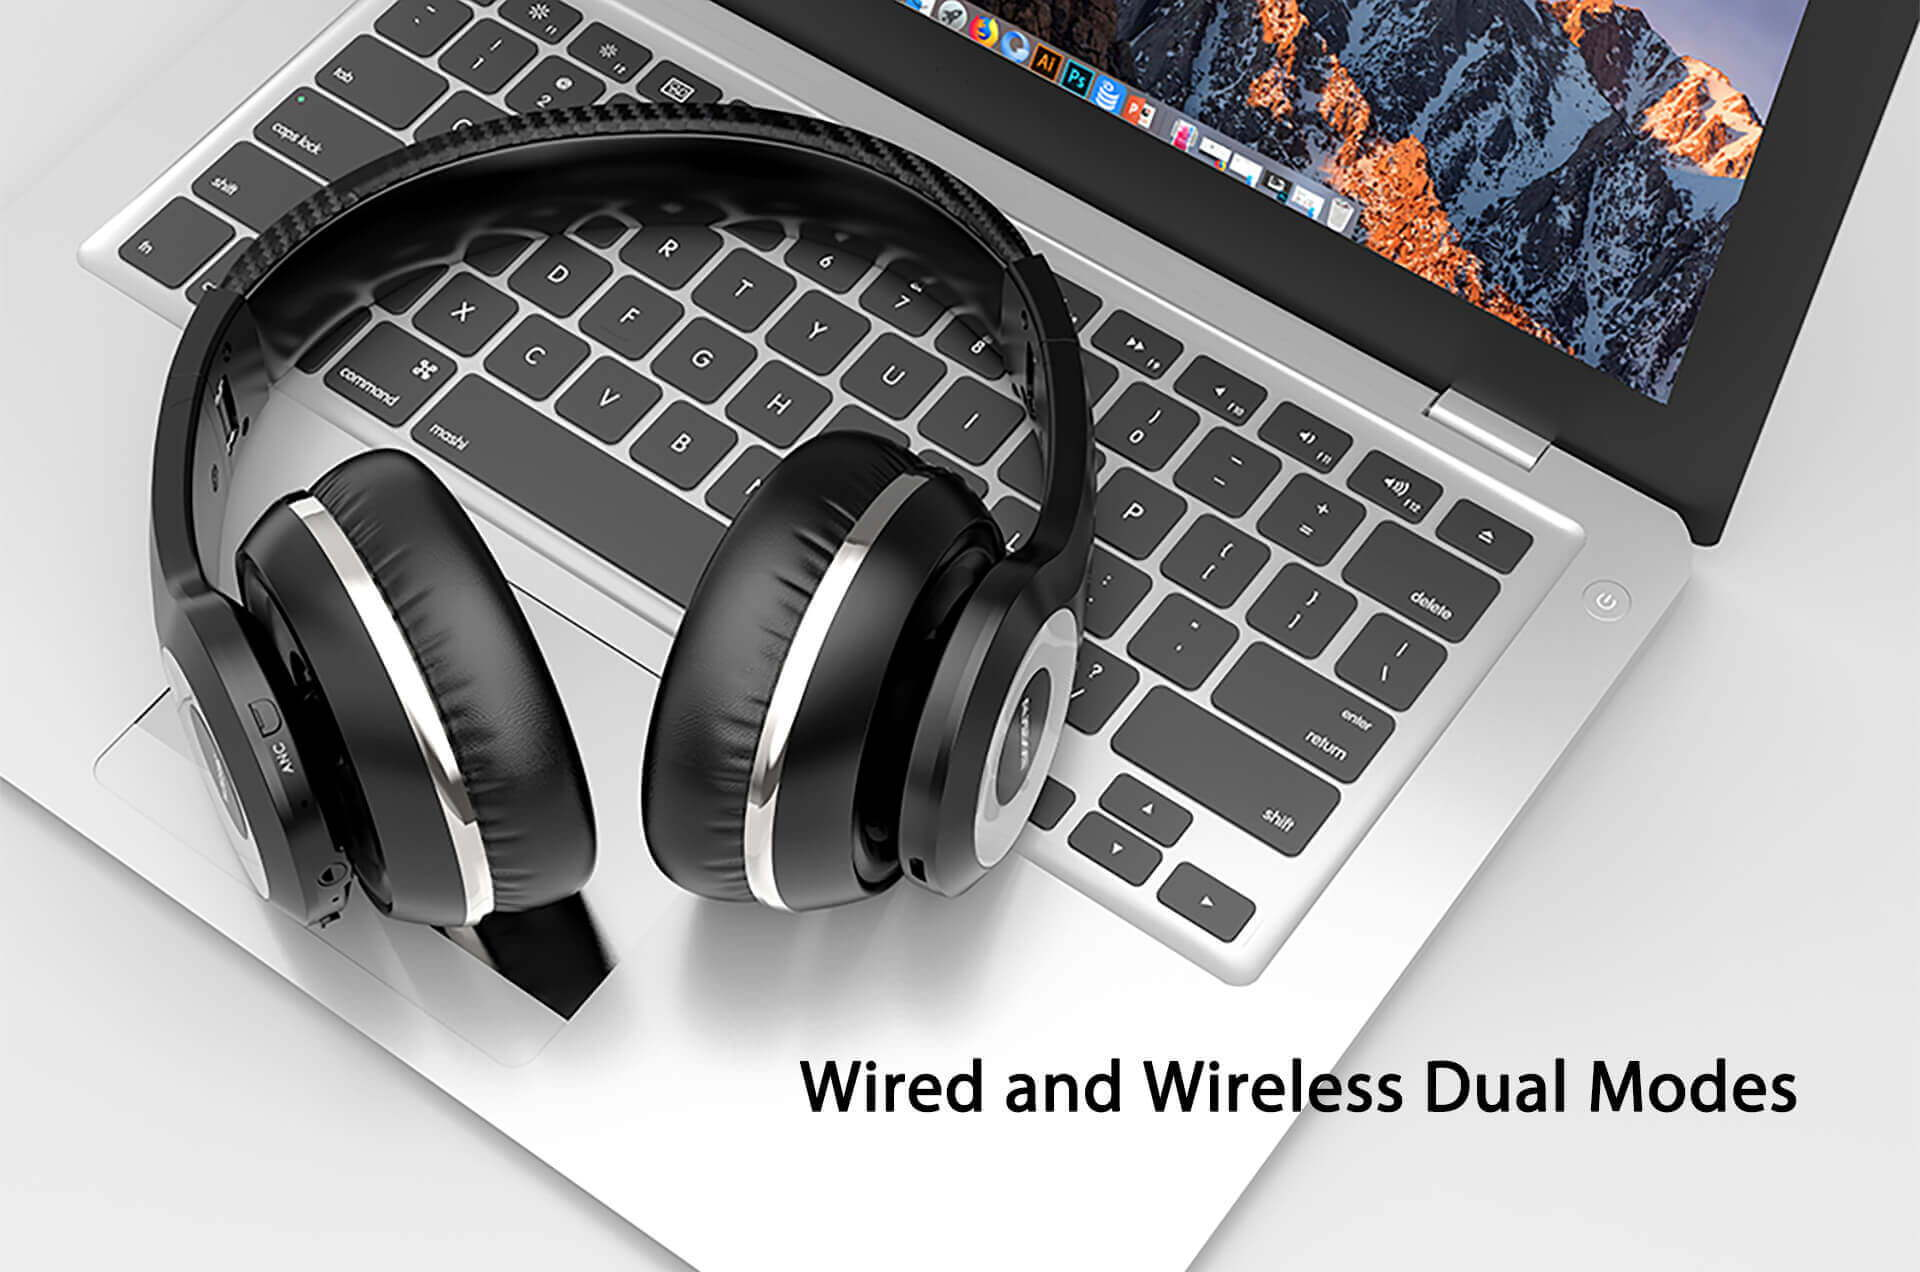 Wired and Wireless Dual Modes